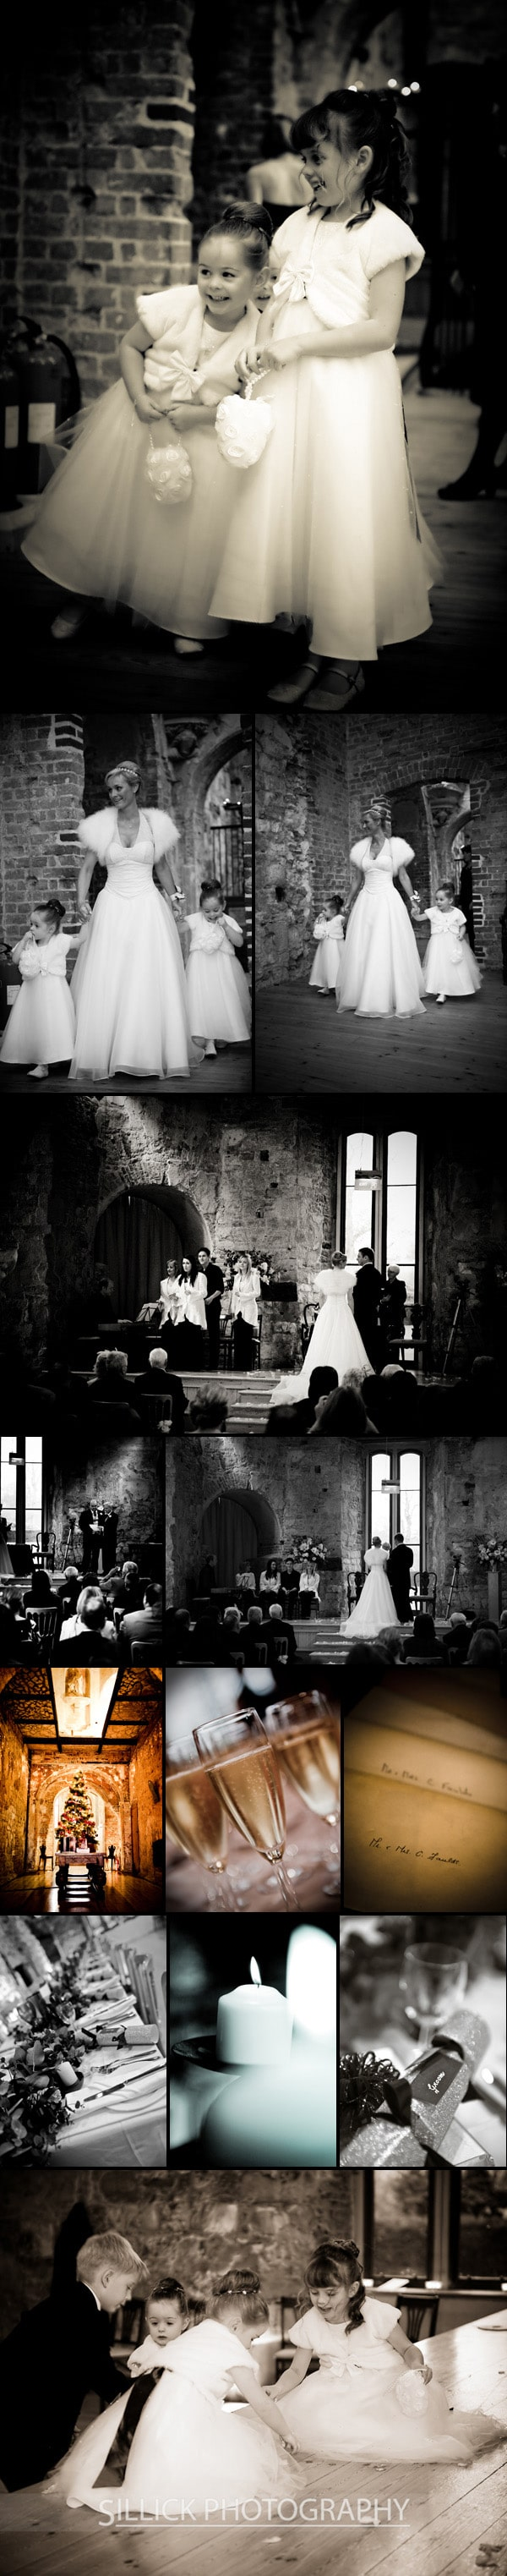 Sillick Photography - Lulworth Castle Wedding